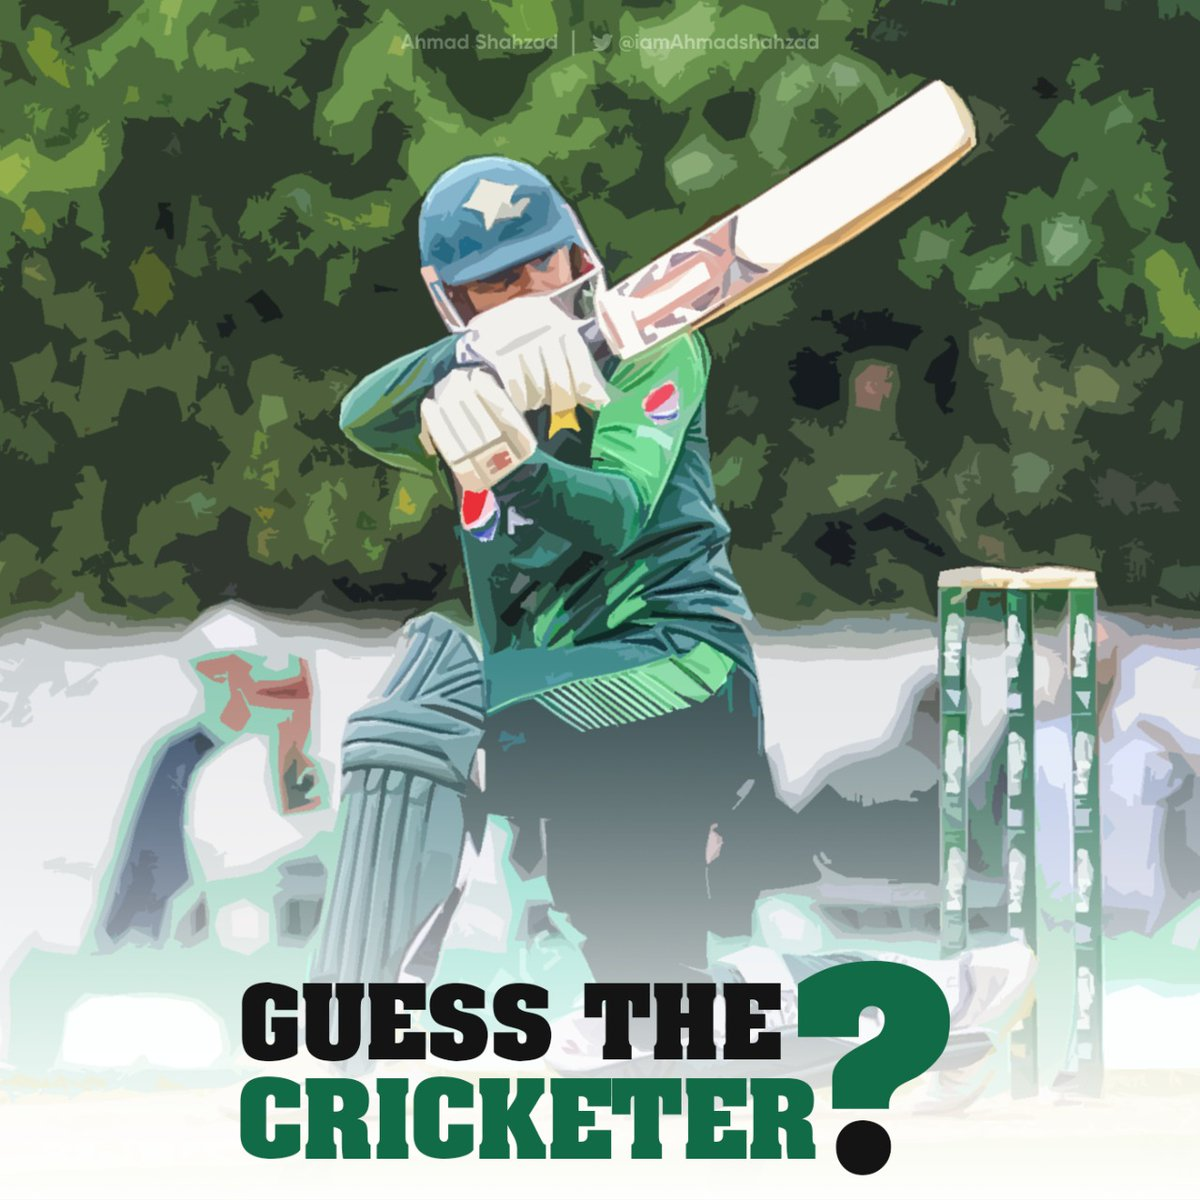 Can you #GuessTheCricketer ? https://t.co/ts3Inx84rY